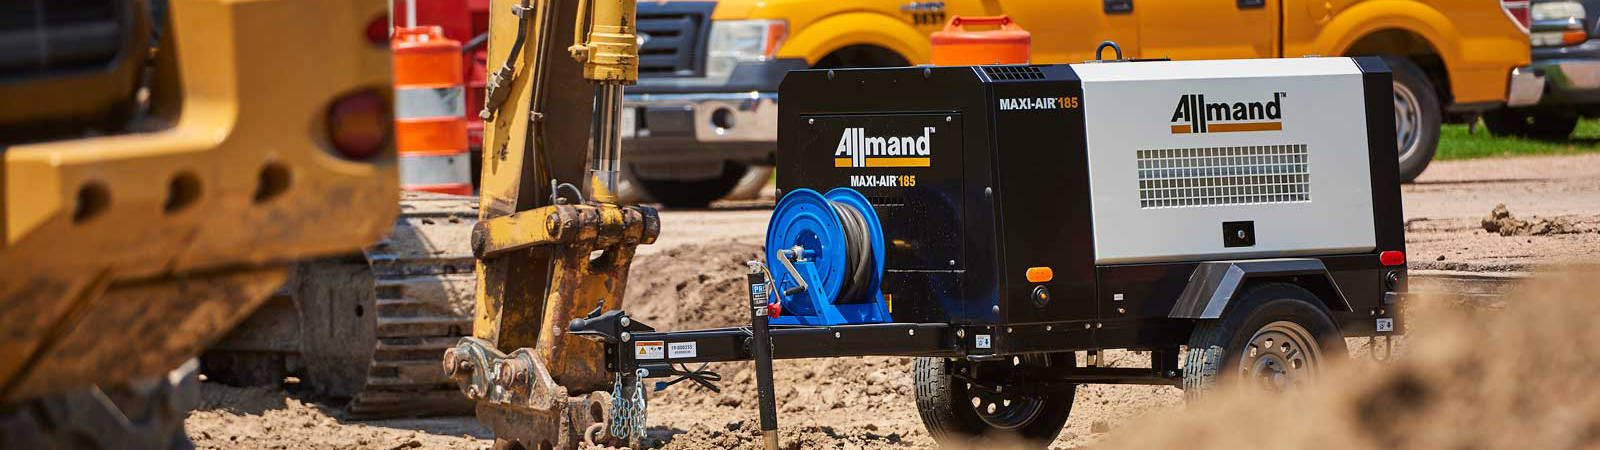 Allmand Maxi-Air Compressor